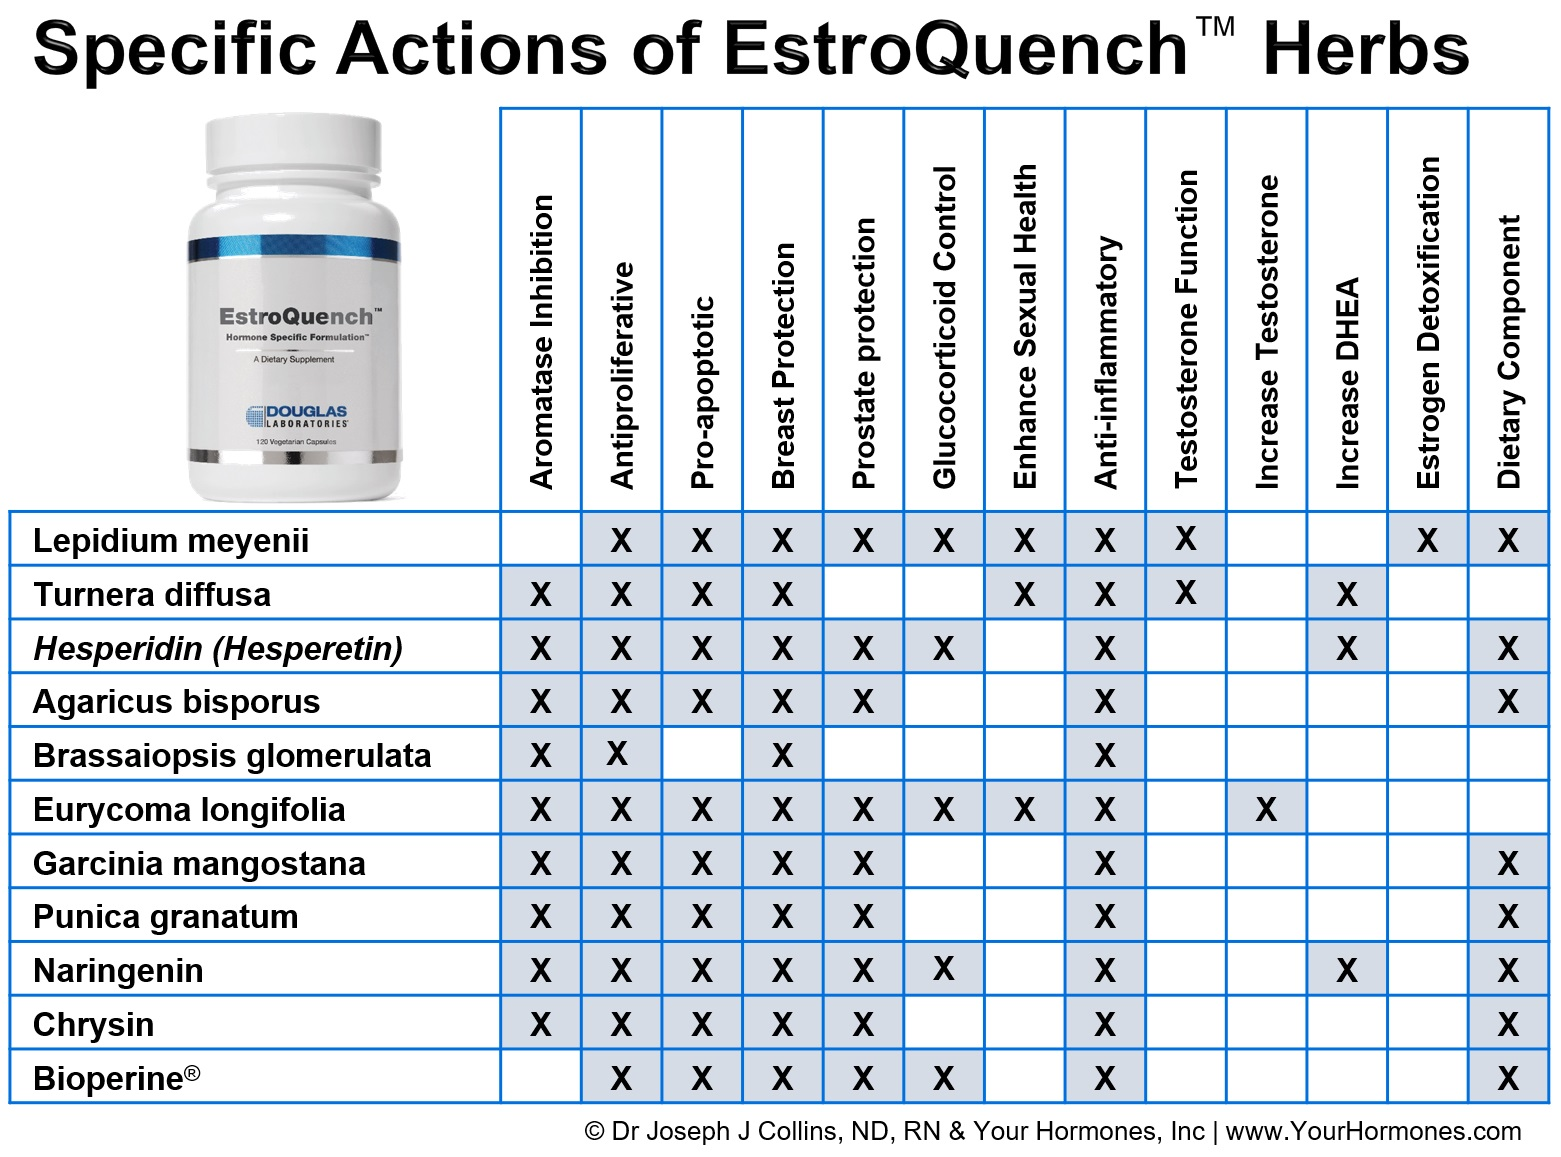 Specific Actions of Herbs in EstroQuench™